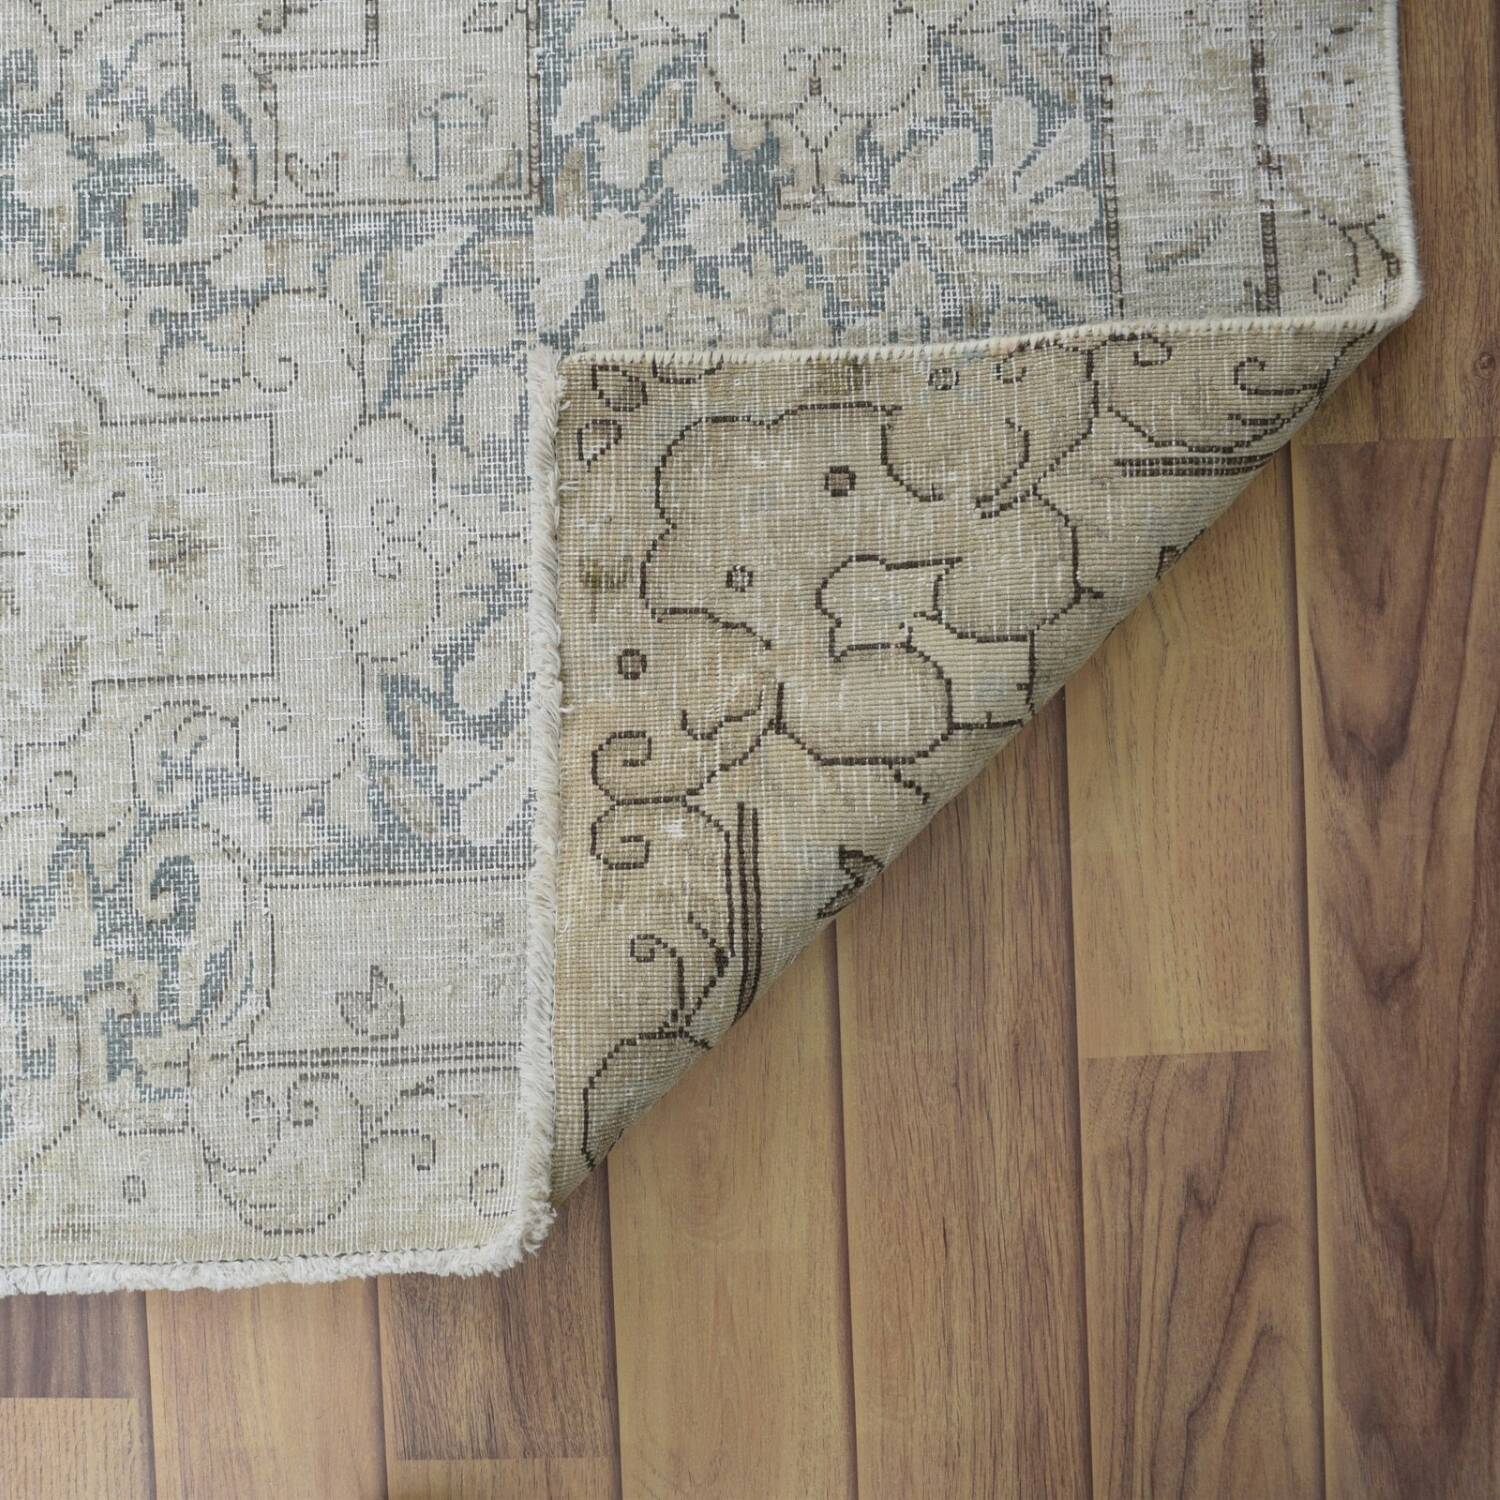 Antique Distressed Floral Kerman Persian Muted Area Rug 10x13 image 7